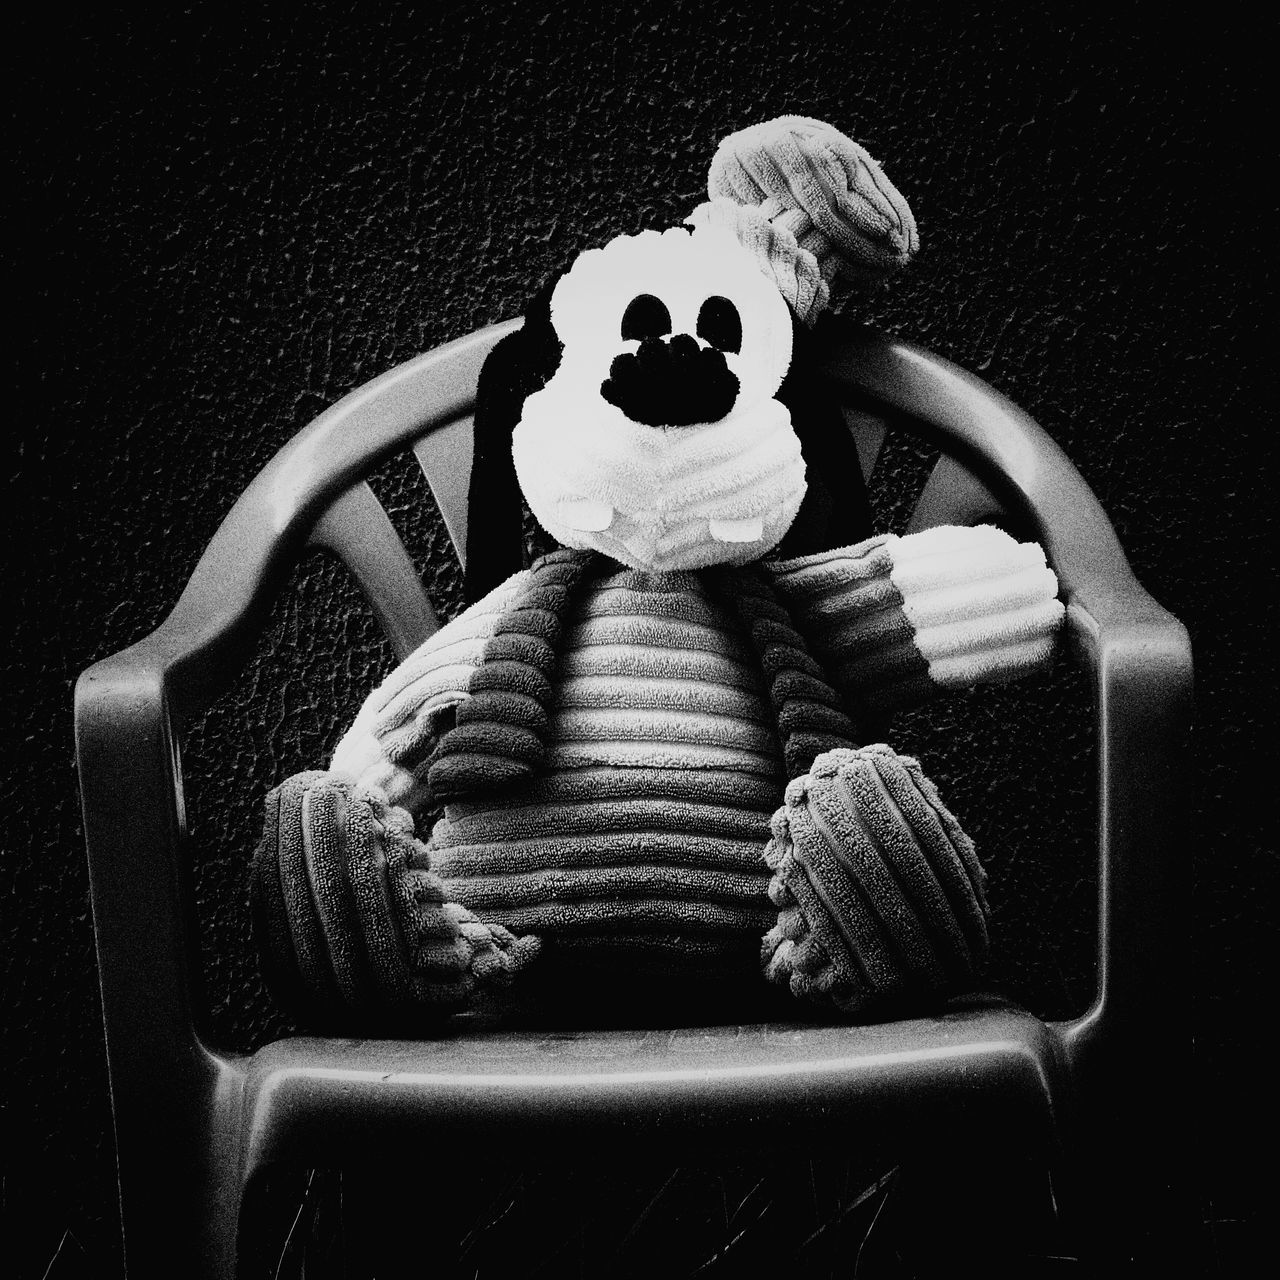 Praticando objetos. Still Black And White Innocence Outdoors Outdoors Modografiabrasil Modografiavisual Modografia Omegafly Toys Brinquedos